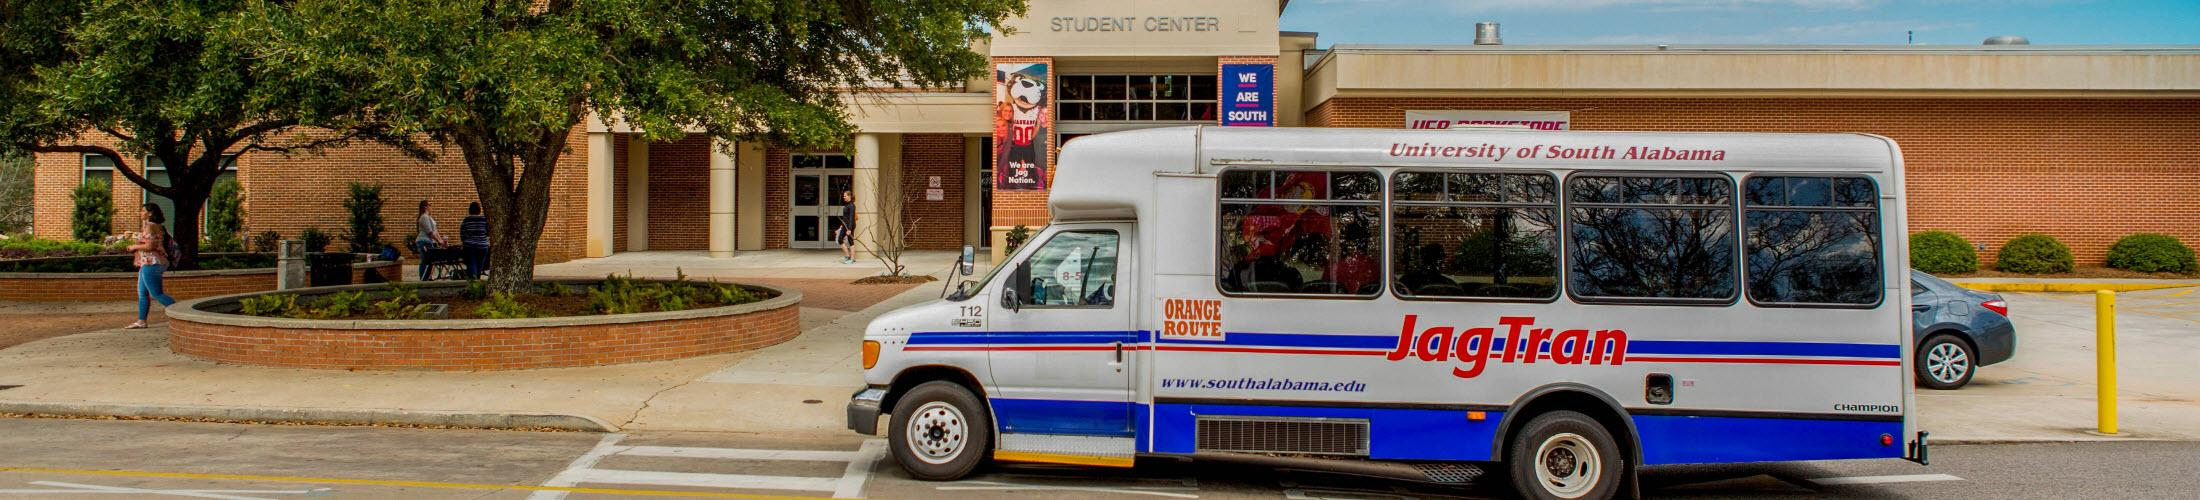 Main Stop at Student Center